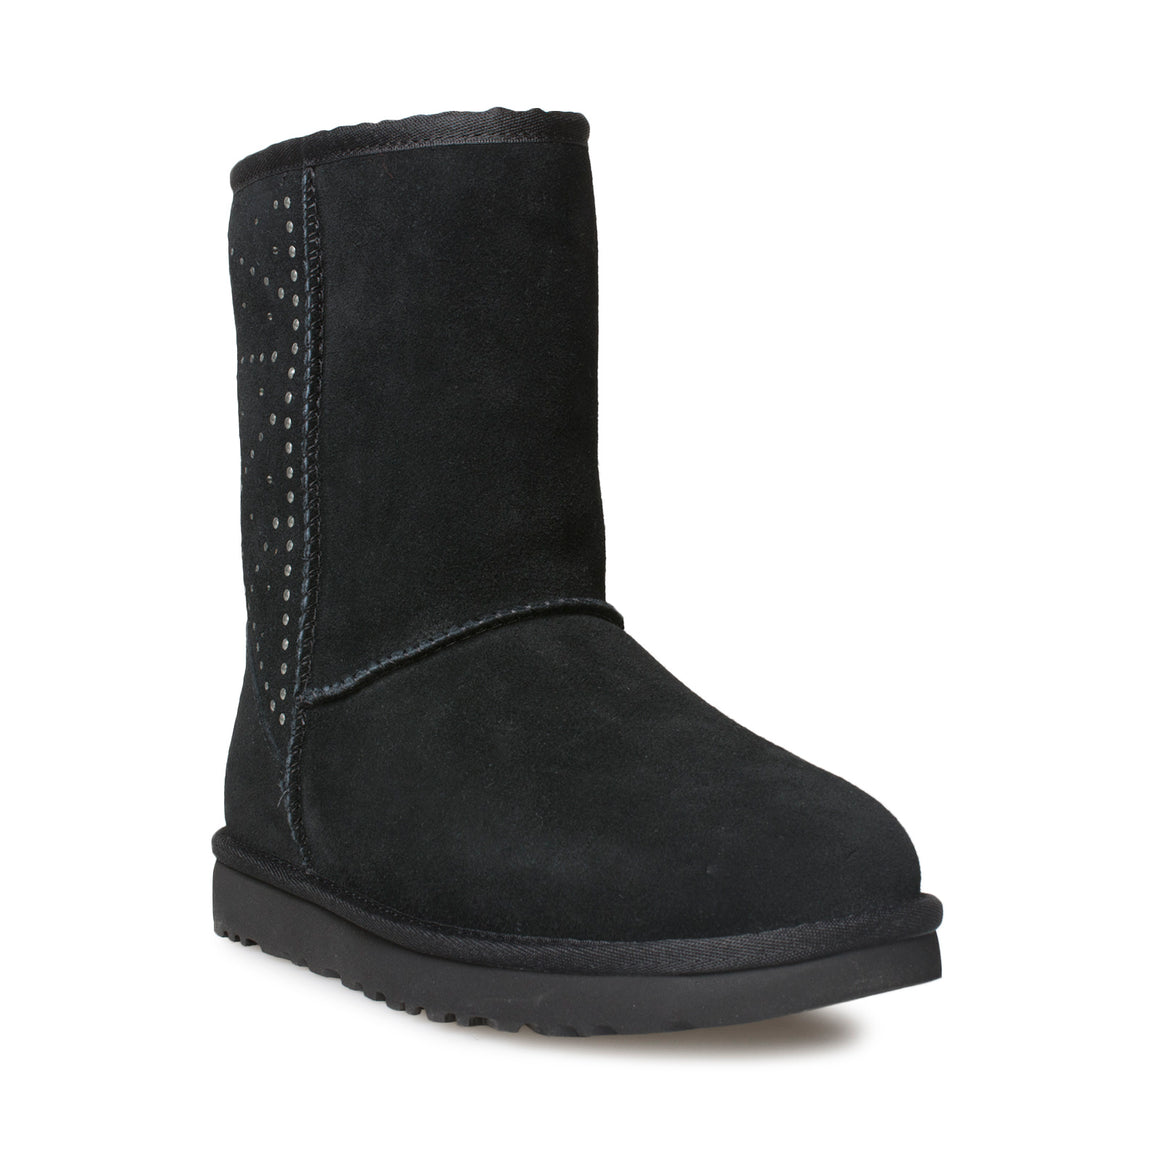 UGG Classic Short Studded Black Boots - Women's